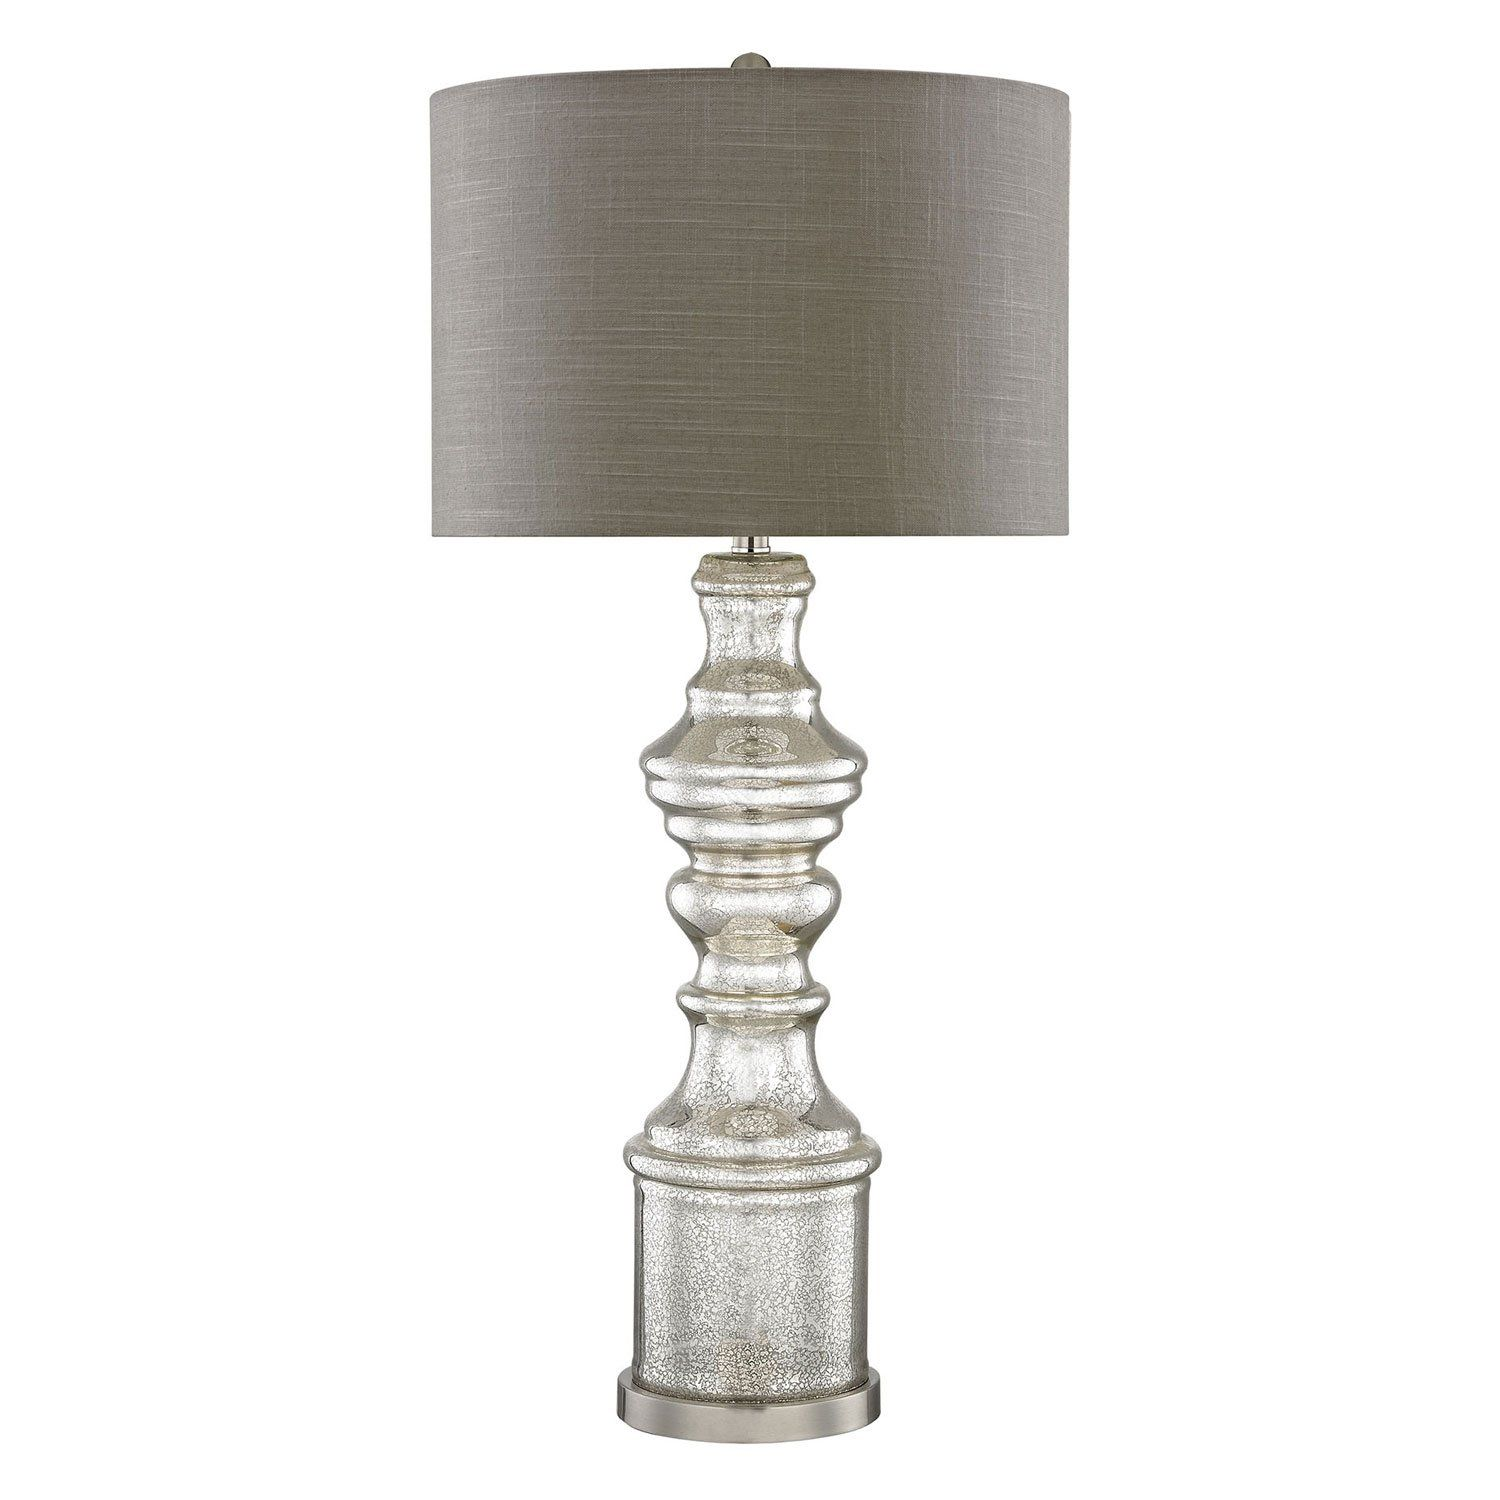 Givins Table Lamp Paynesgray Table Lamp